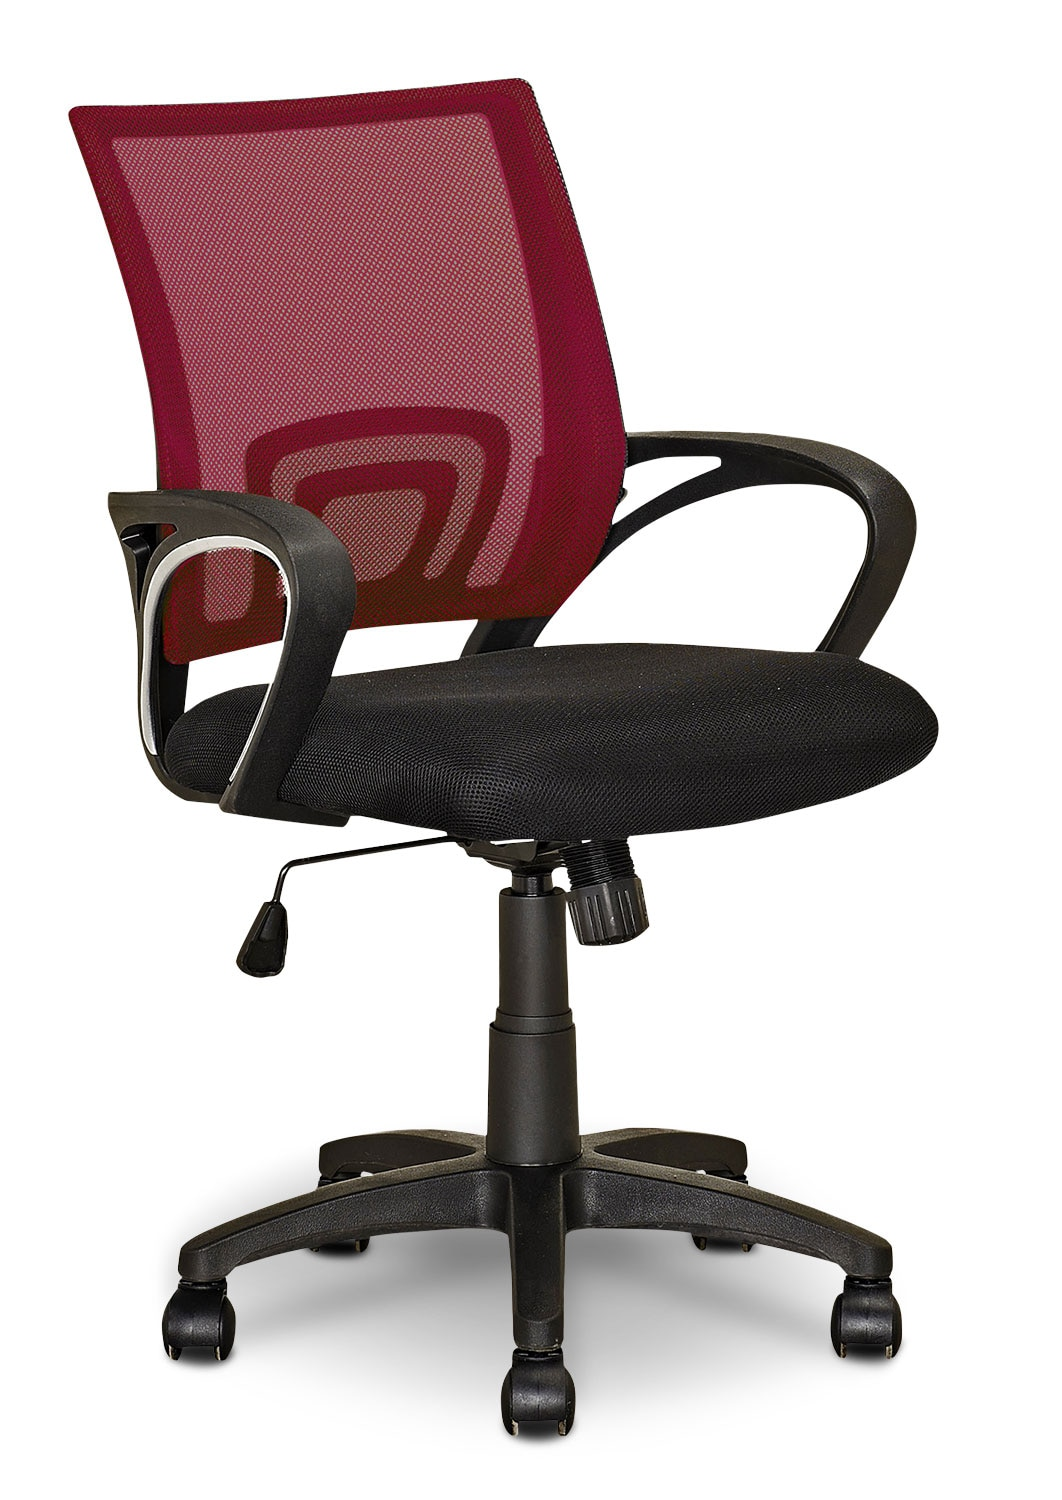 Loft mesh office chair dark red the brick